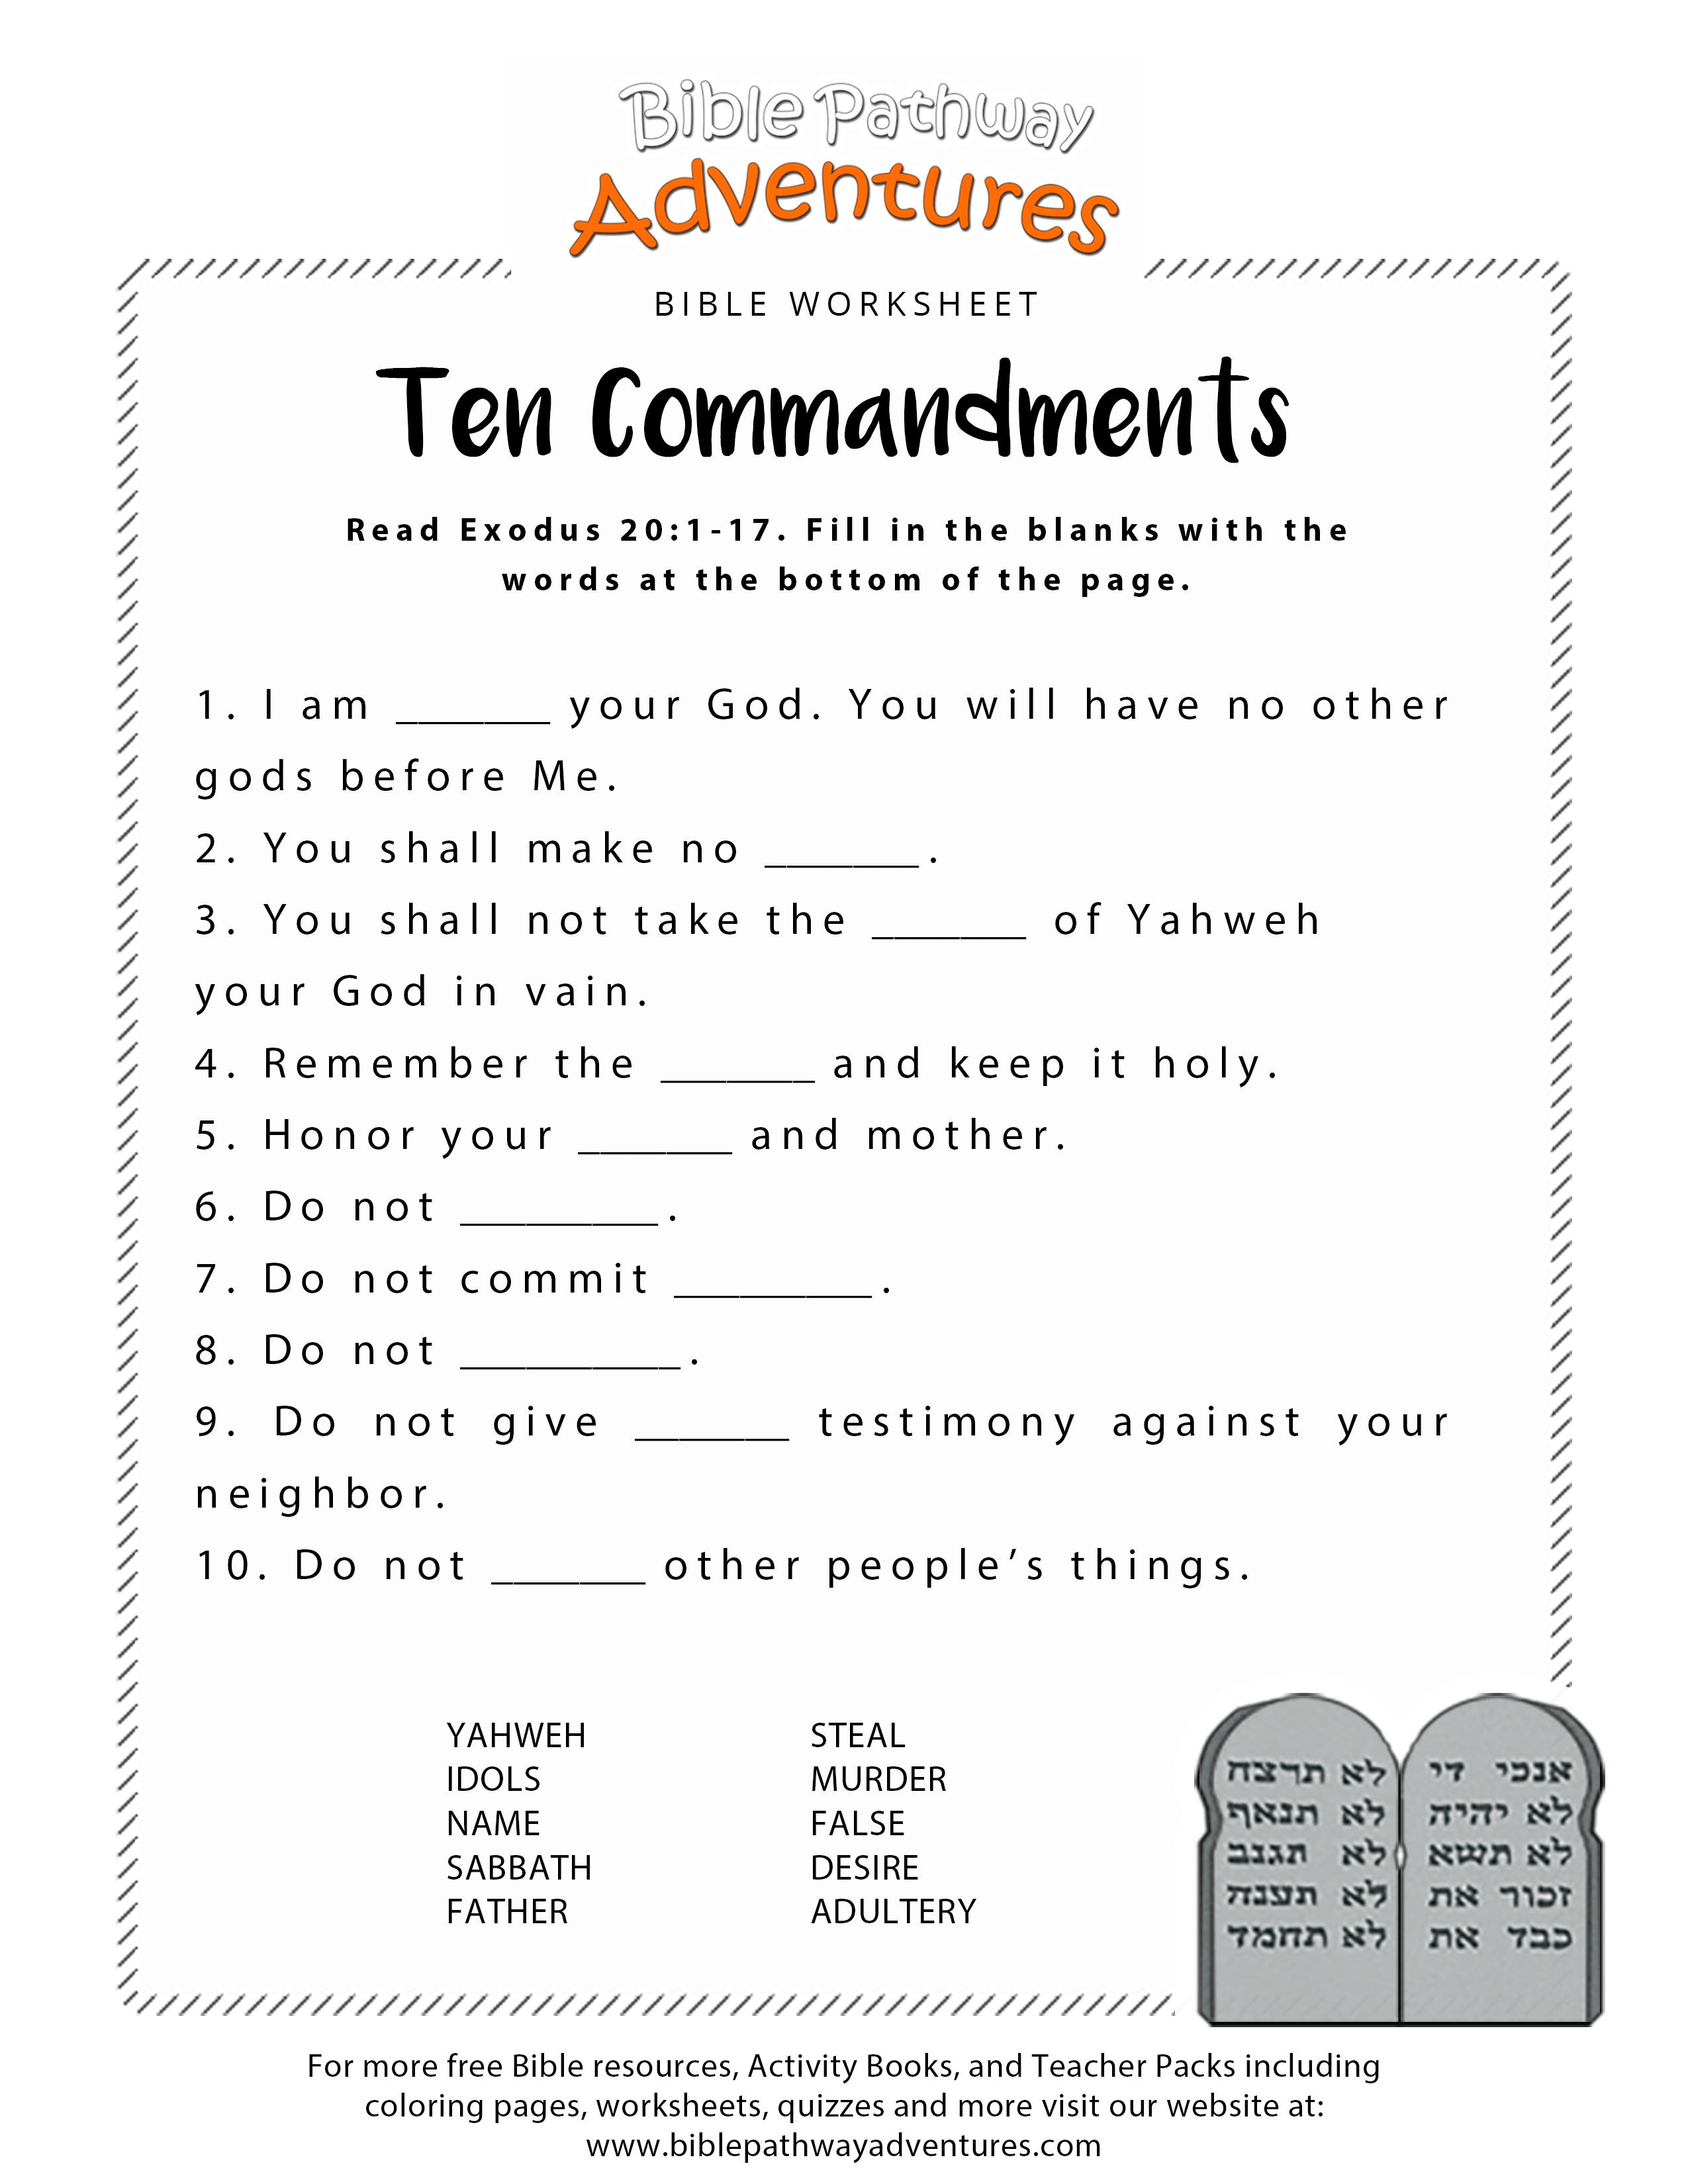 Free Printable Bible Worksheets For Youth – Worksheet Template - Free Printable Bible Study Worksheets